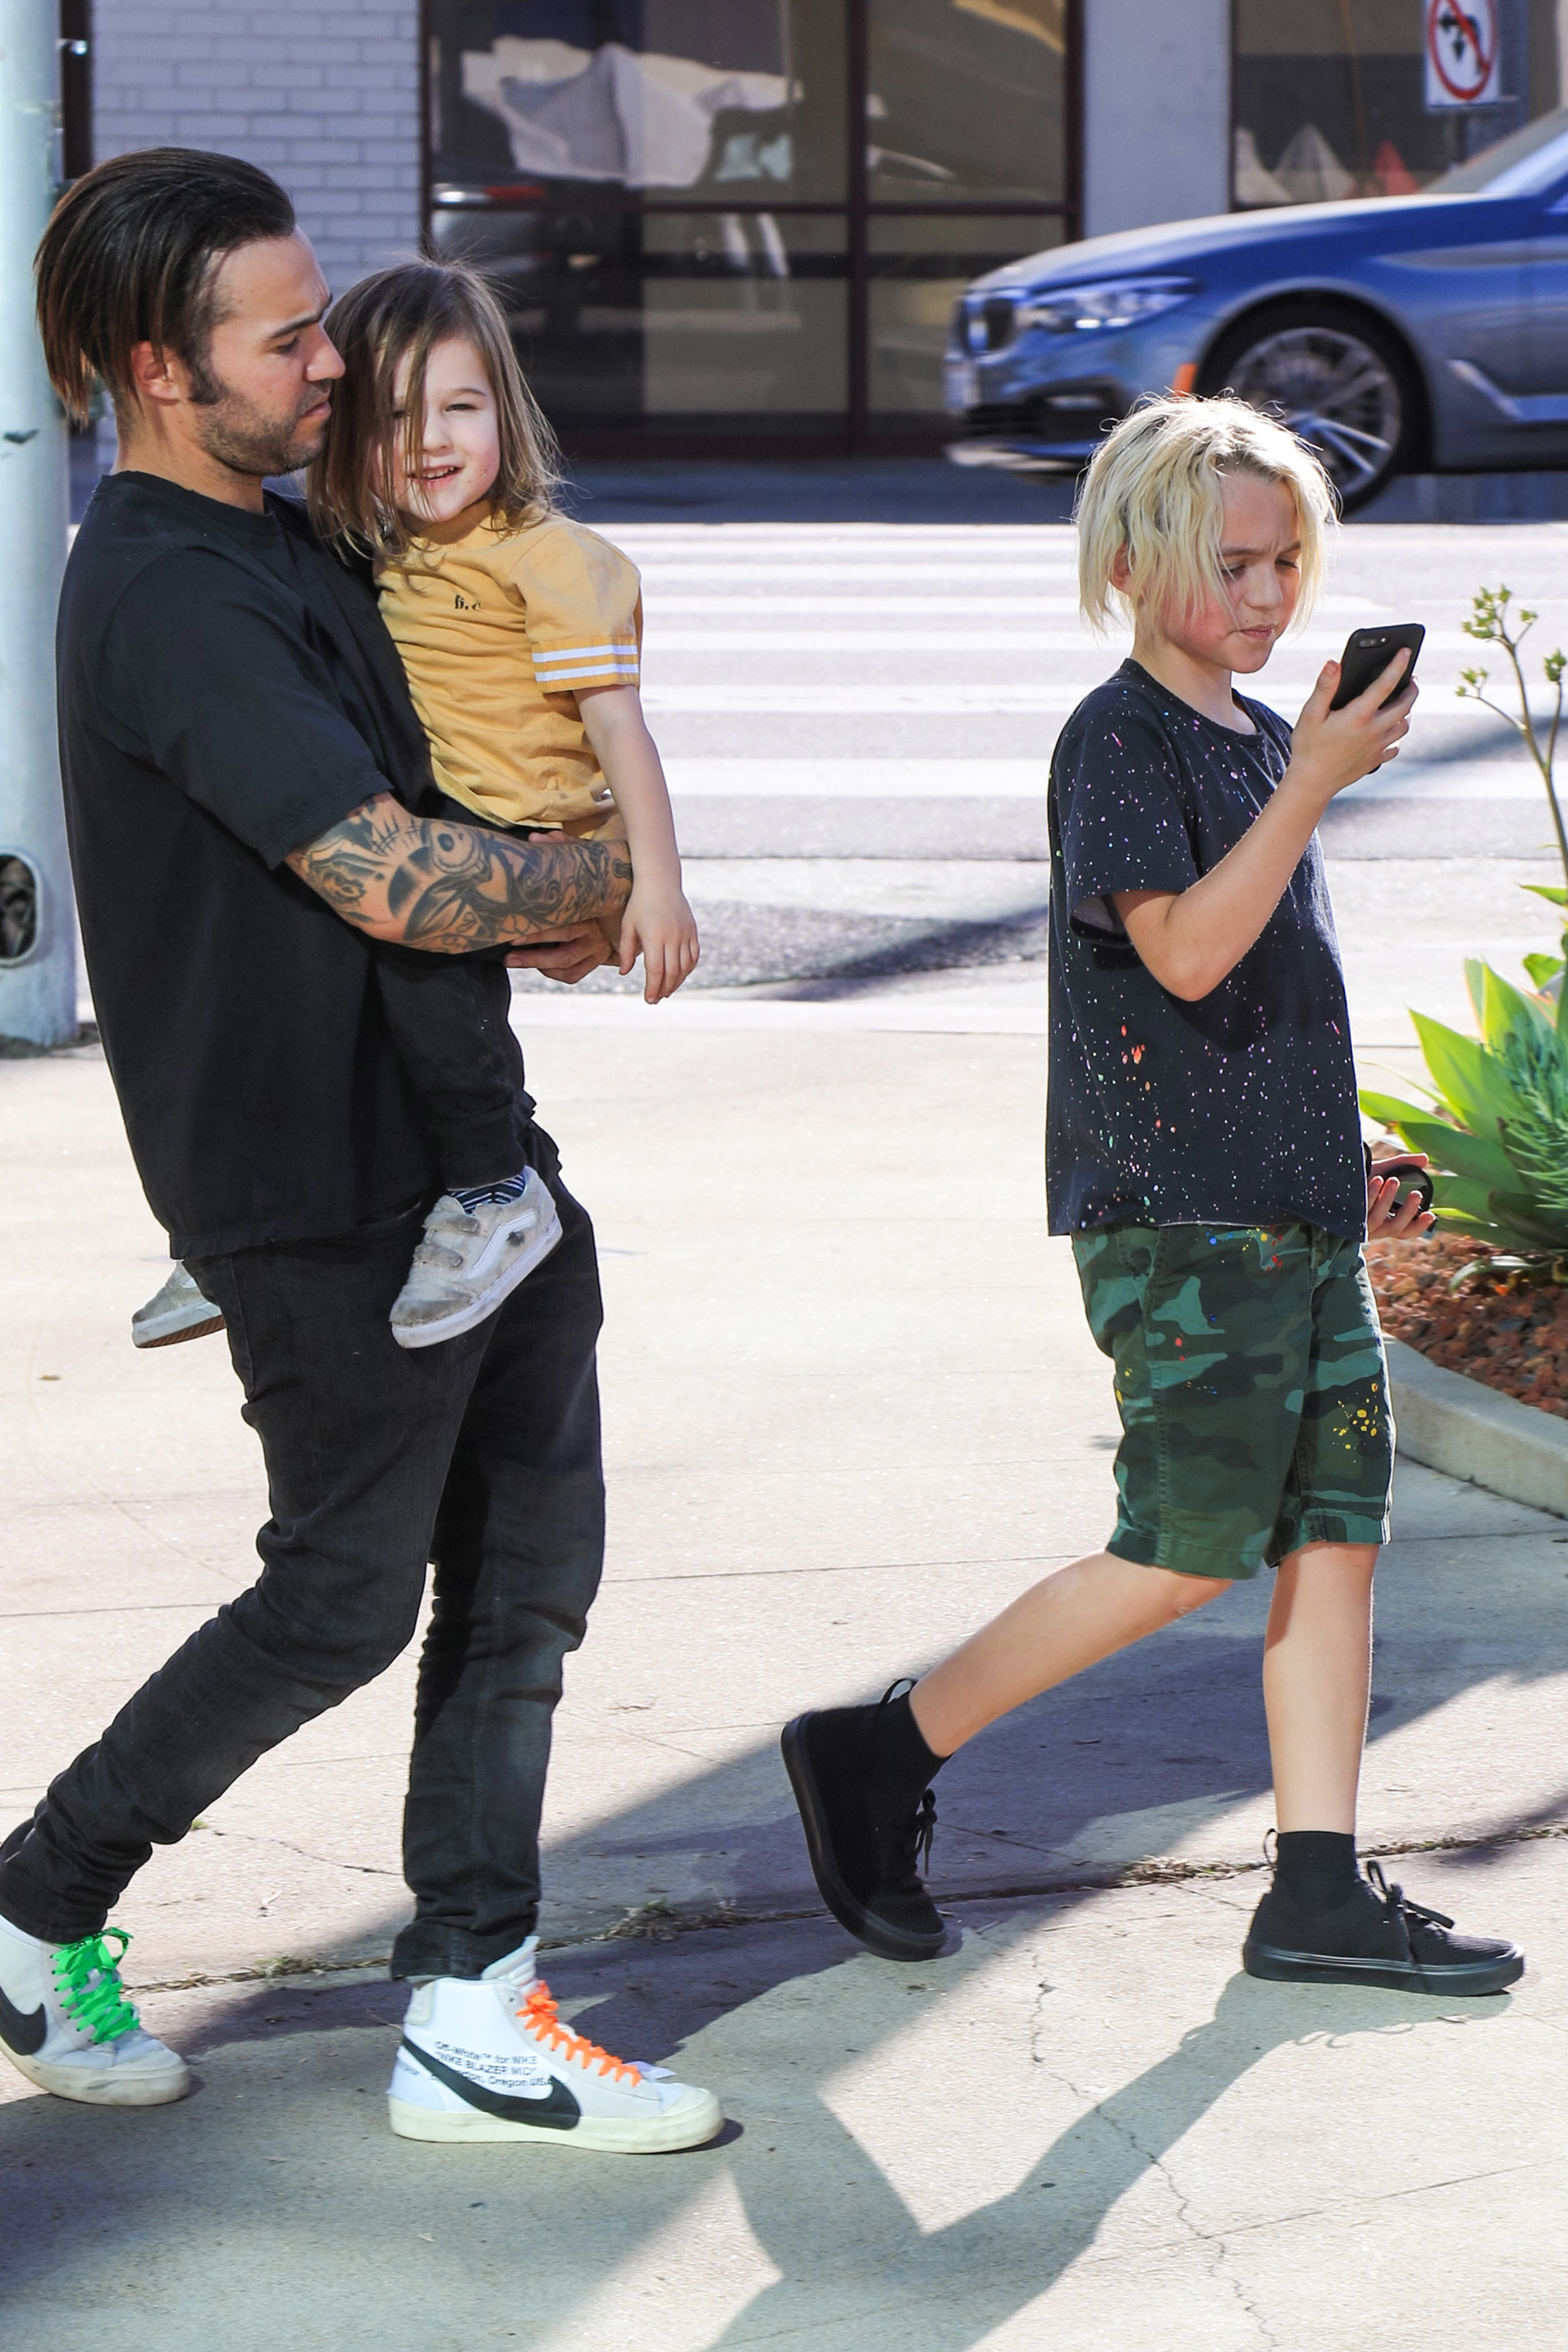 Pete Wentz steps out with his sons, Saint and Bronx, in Los Angeles on Jan. 14, 2018.